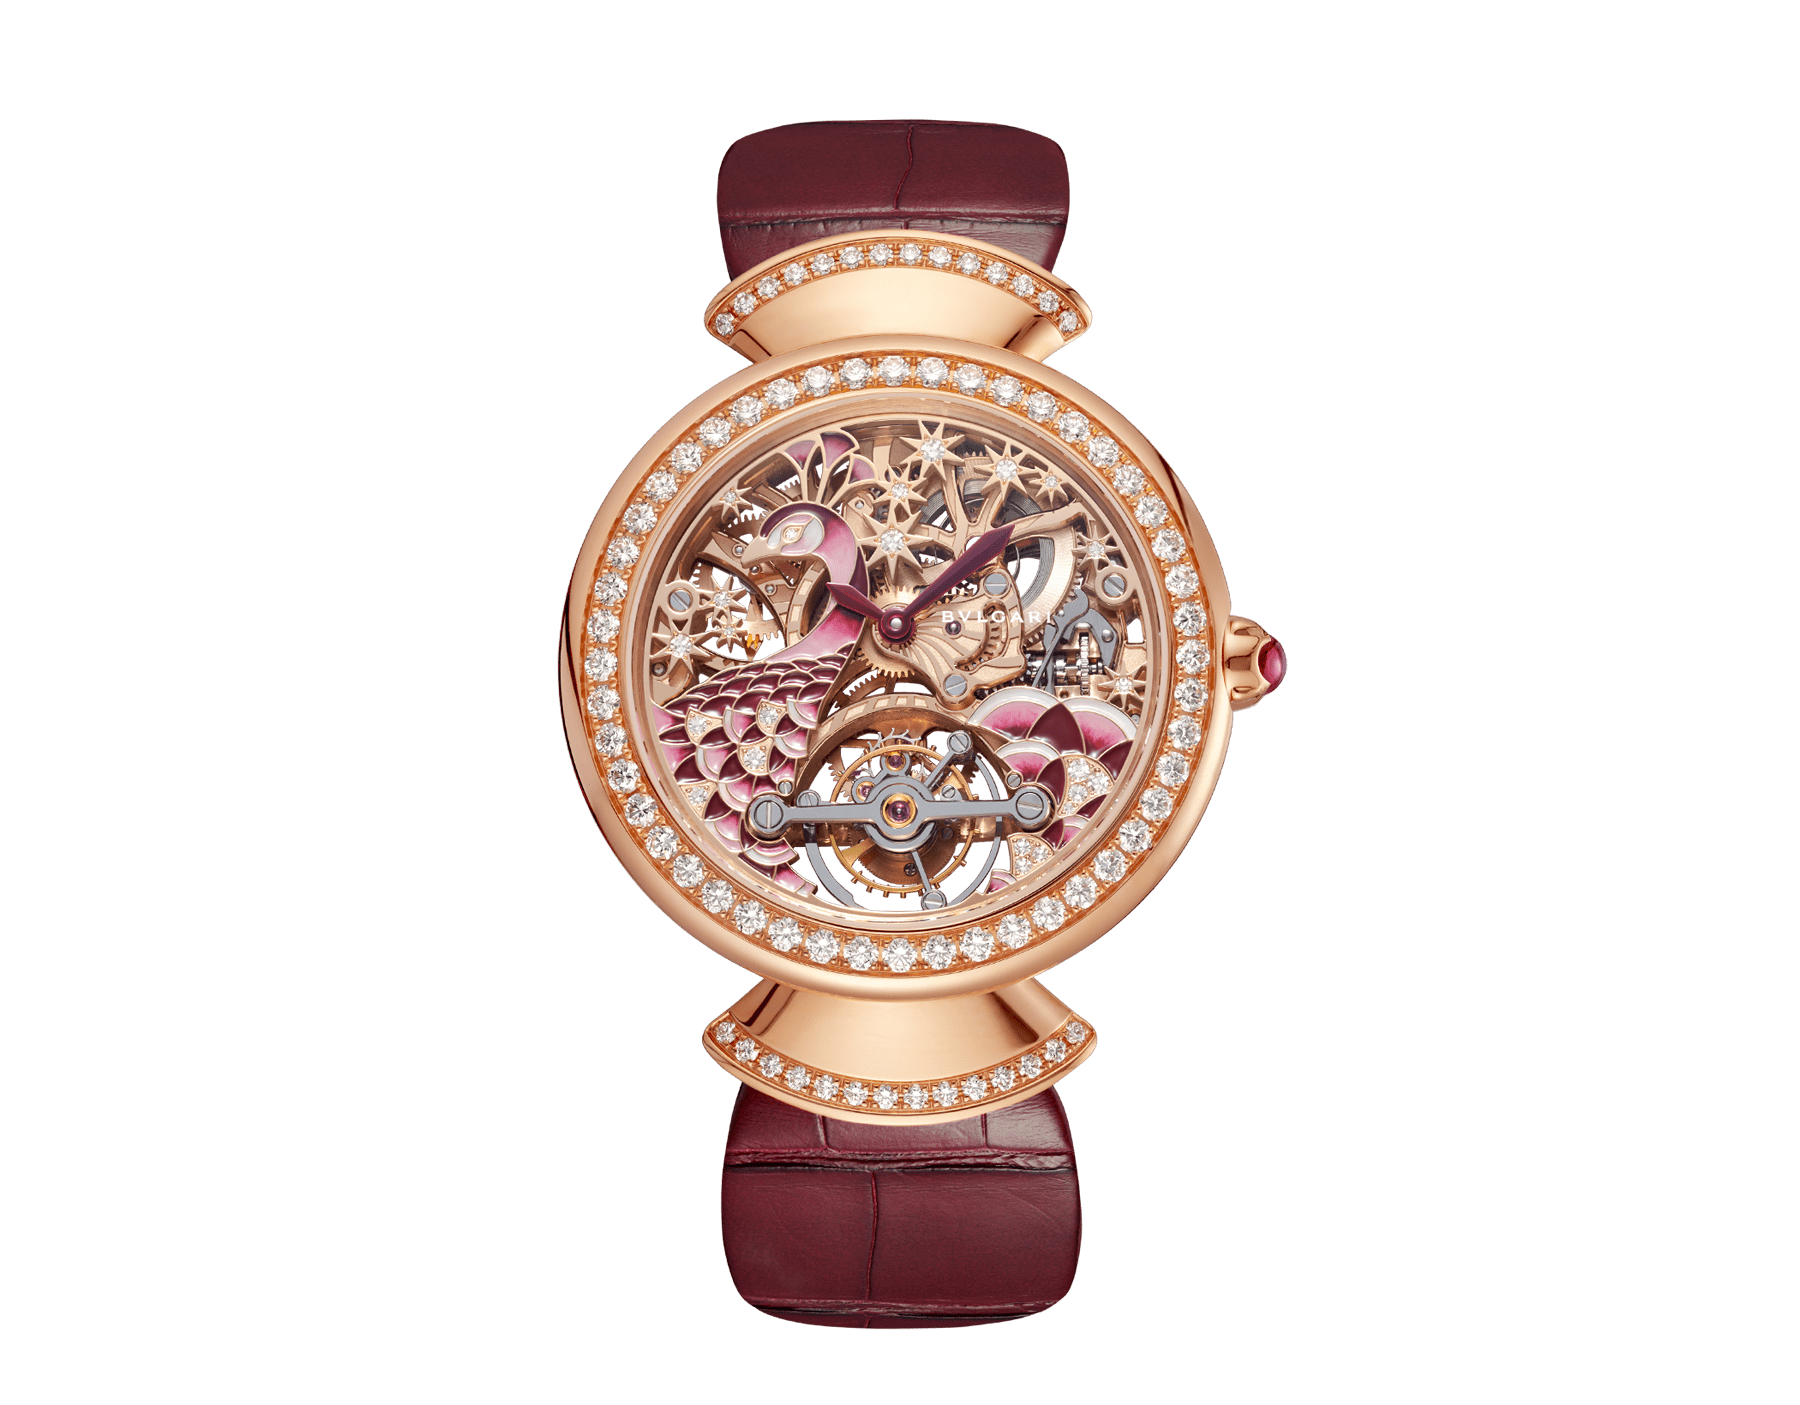 DIVAS' DREAM watch with skeletonised mechanical manufacture movement in 18 kt rose gold, tourbillon, manual winding, 18 kt rose gold case, 18 kt rose gold bezel and links set with brilliant-cut diamonds, 18 kt rose gold skeletonised dial decorated with hand-painted miniature motif of a peacock and stars made of brilliant-cut diamonds, transparent case back and pink alligator bracelet 103166 image 1